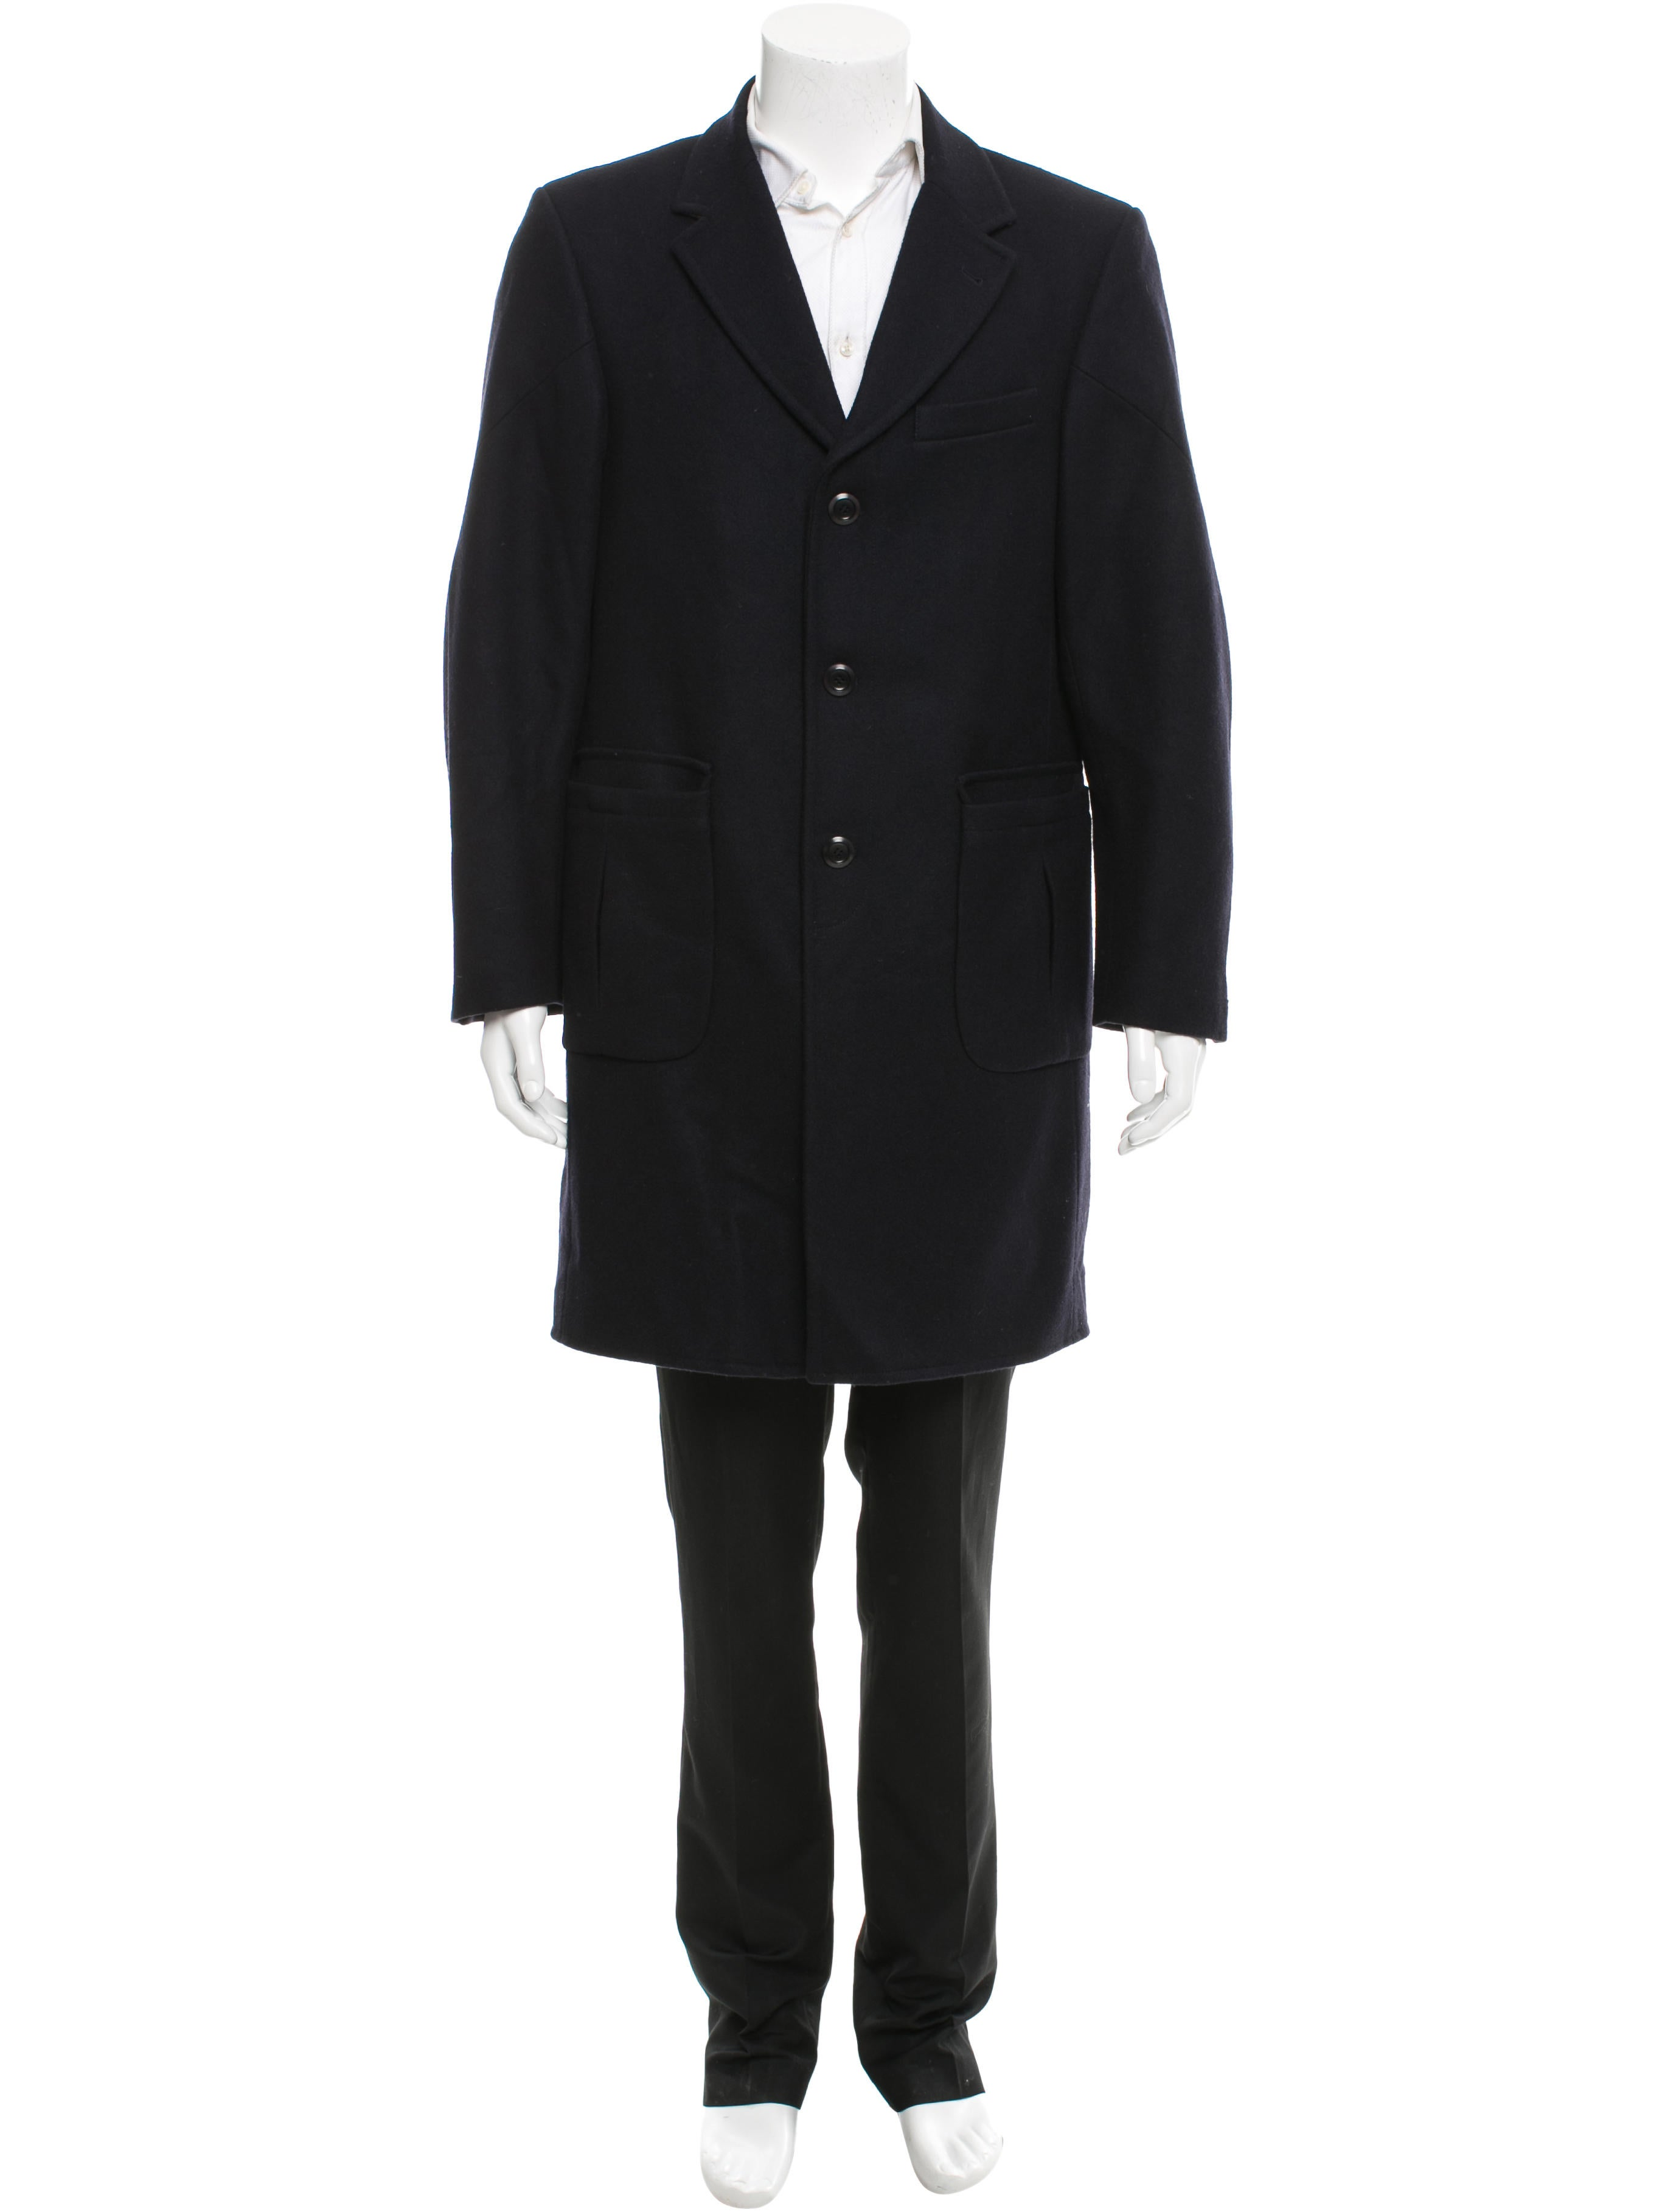 Warm Jackets. Black Yak wool jackets are a premium product made from only high quality pure new sheep's wool with a fleece lining to keep even the coldest blood warm and tickle free.